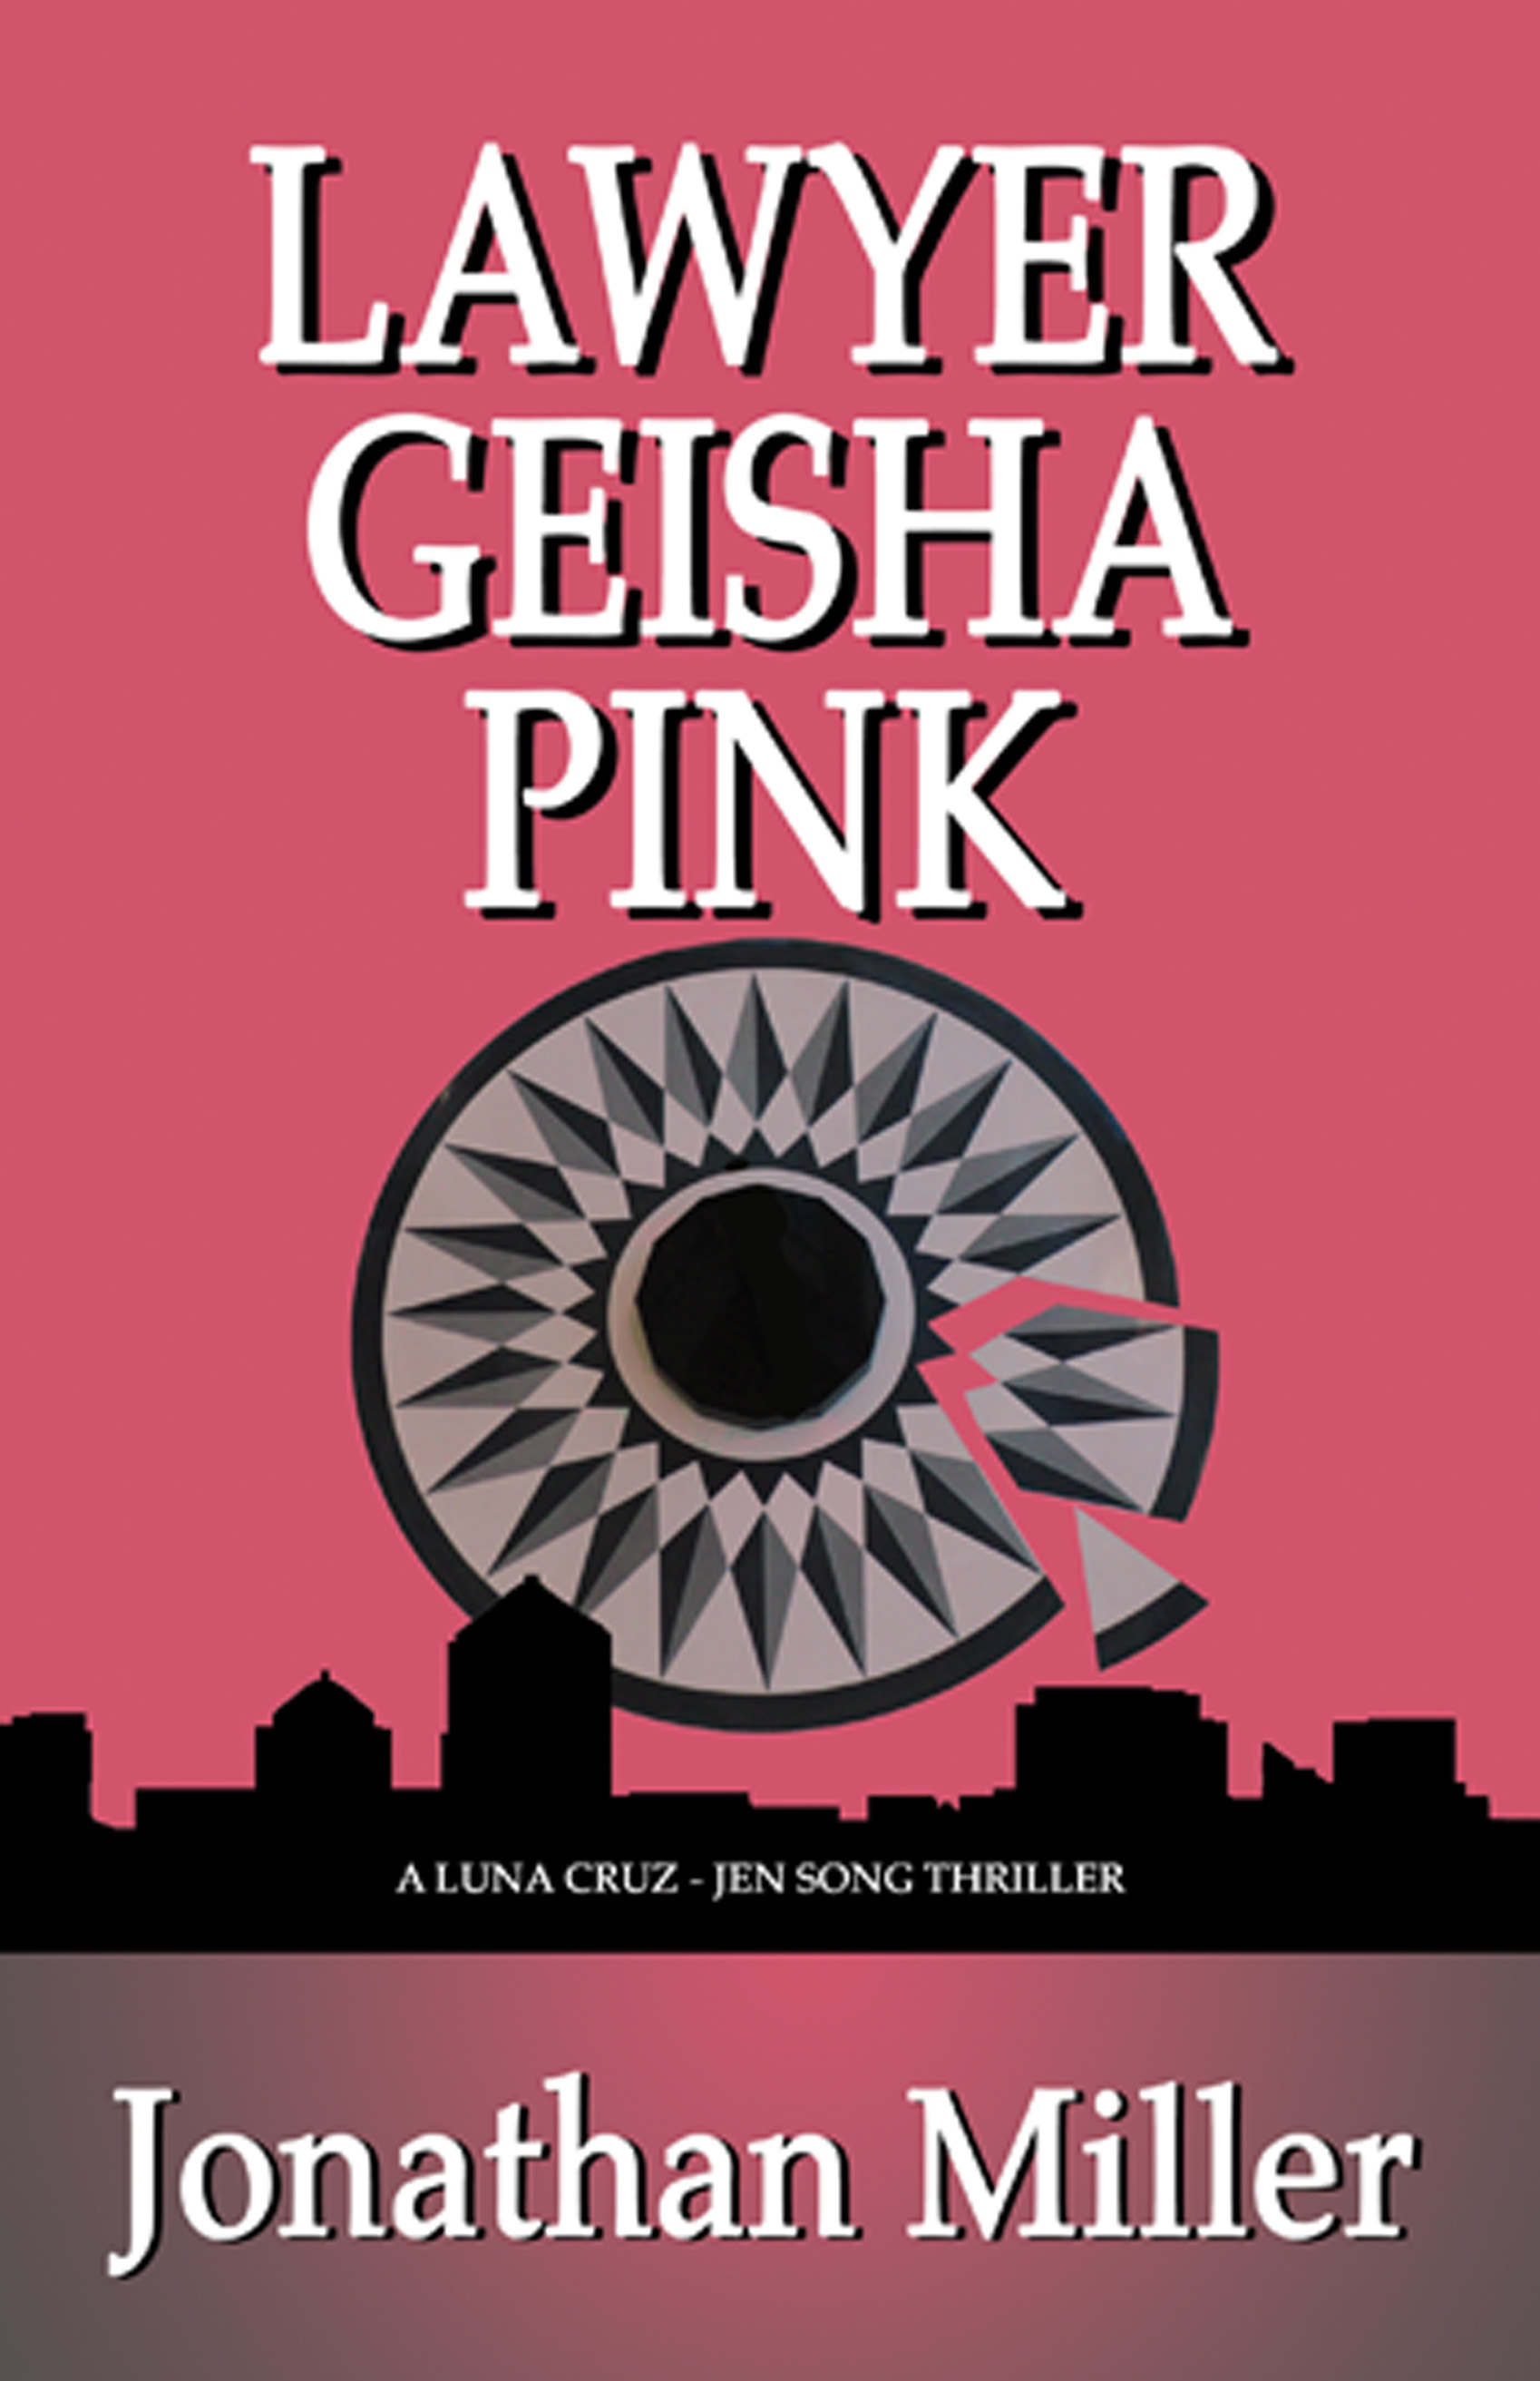 Lawyer Geisha Pink